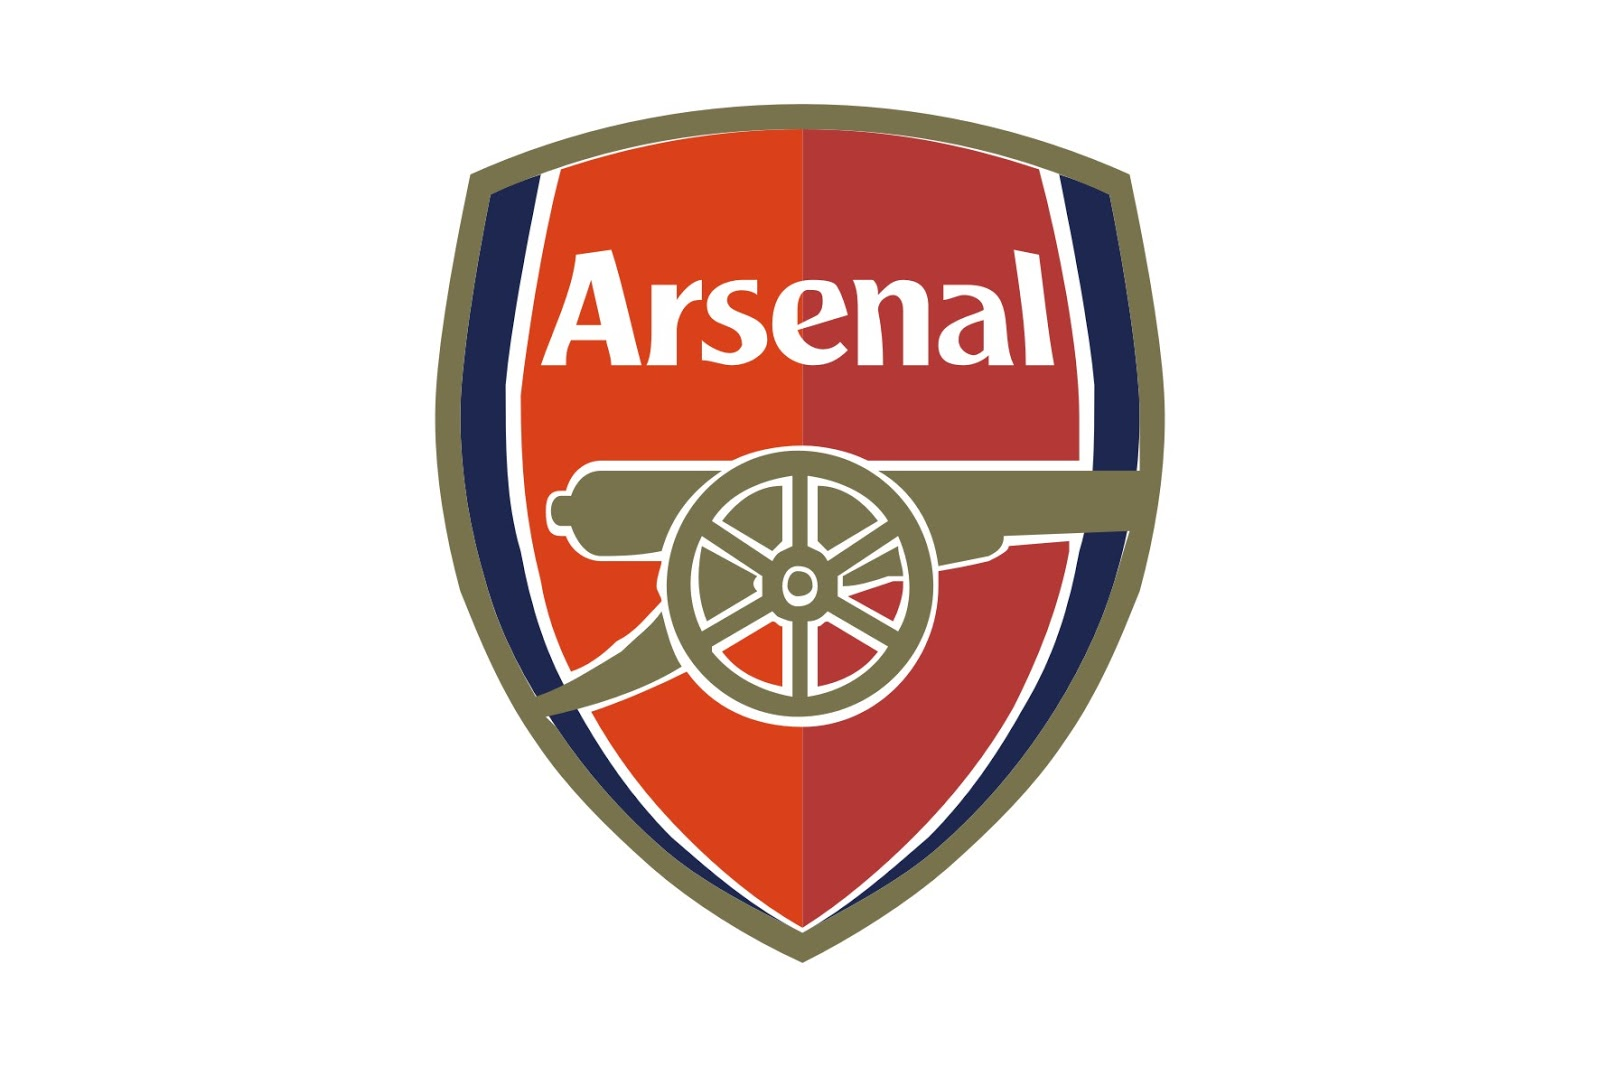 1600x1067 Arsenal Fc Vector Png Transparent Arsenal Fc Vector.png Images